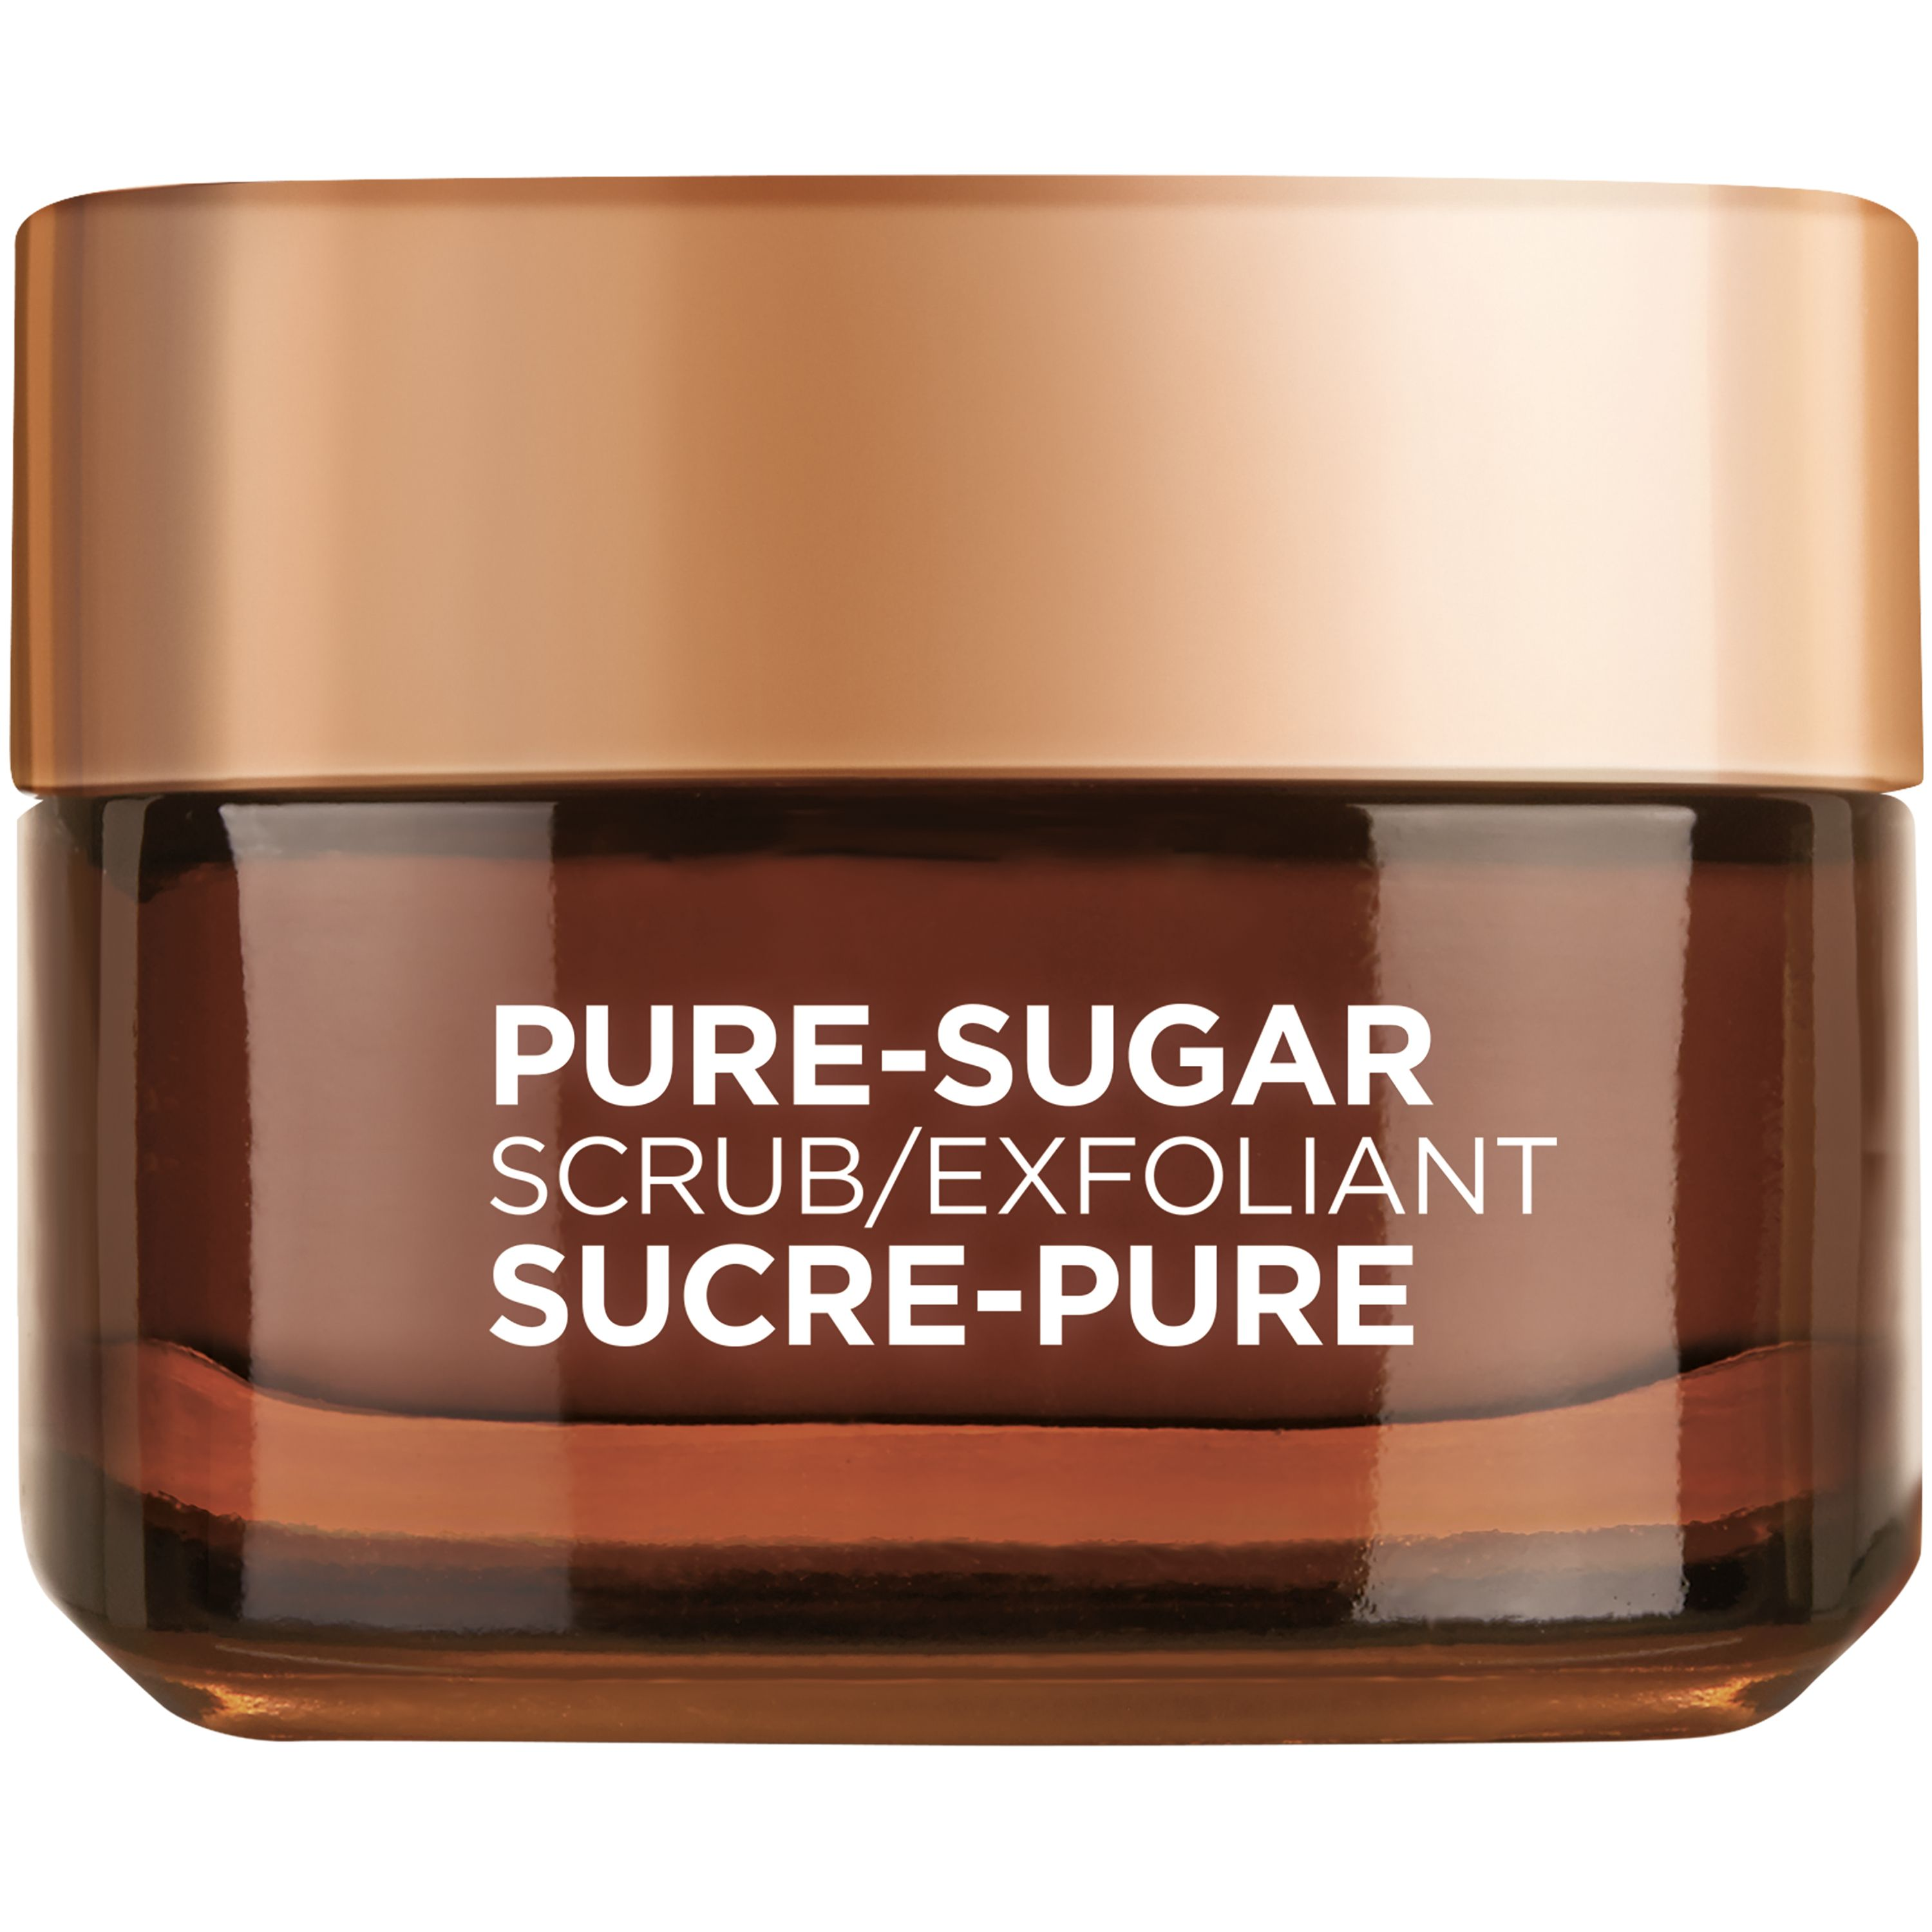 L'Oreal Paris Pure Sugar Scrub Nourish & Soften, 1.7 oz.